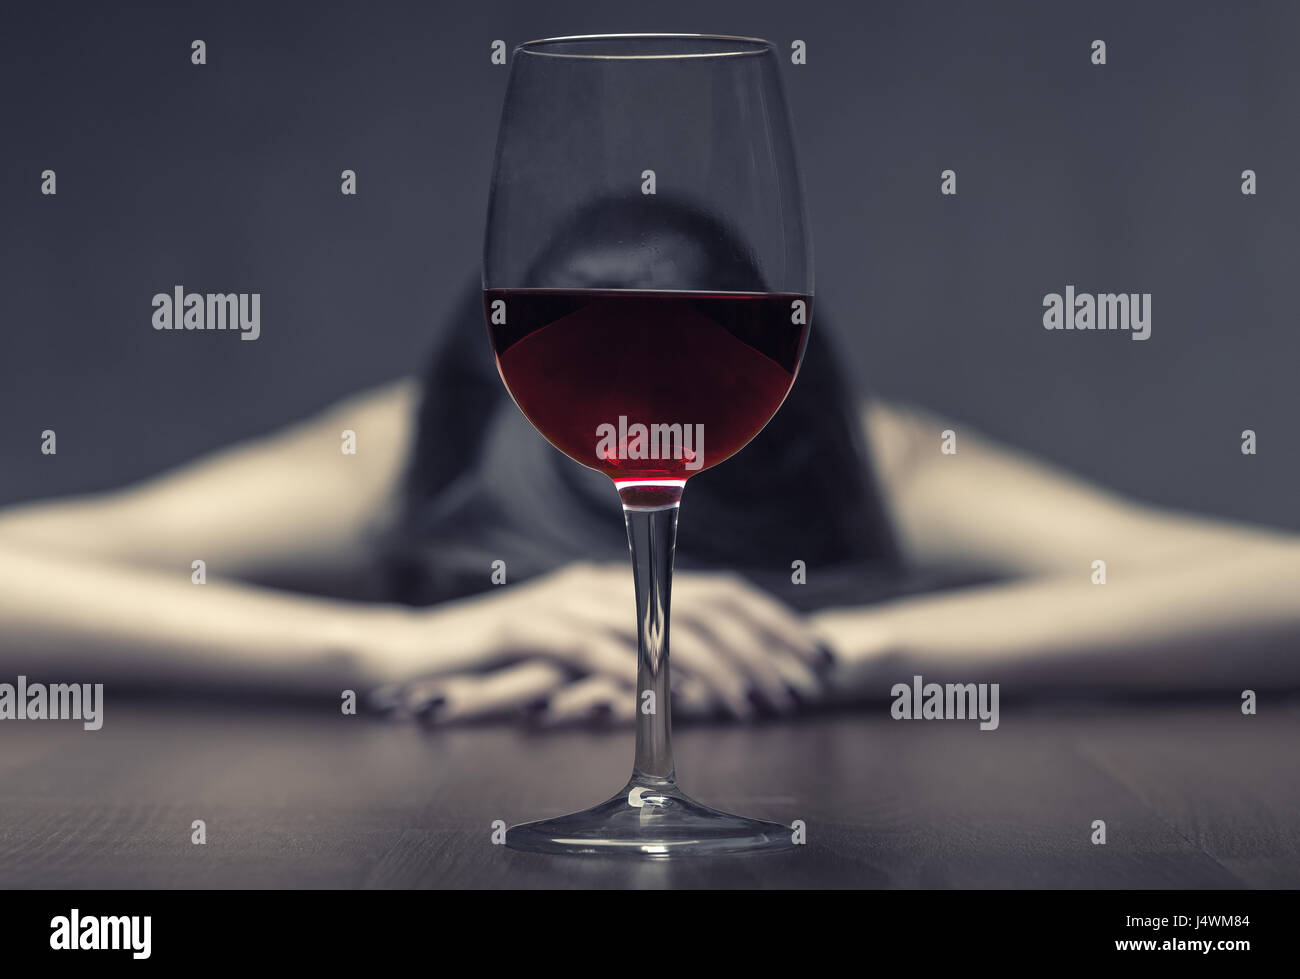 Woman in depression, drinking alcohol on dark background. Focus on the glass - Stock Image